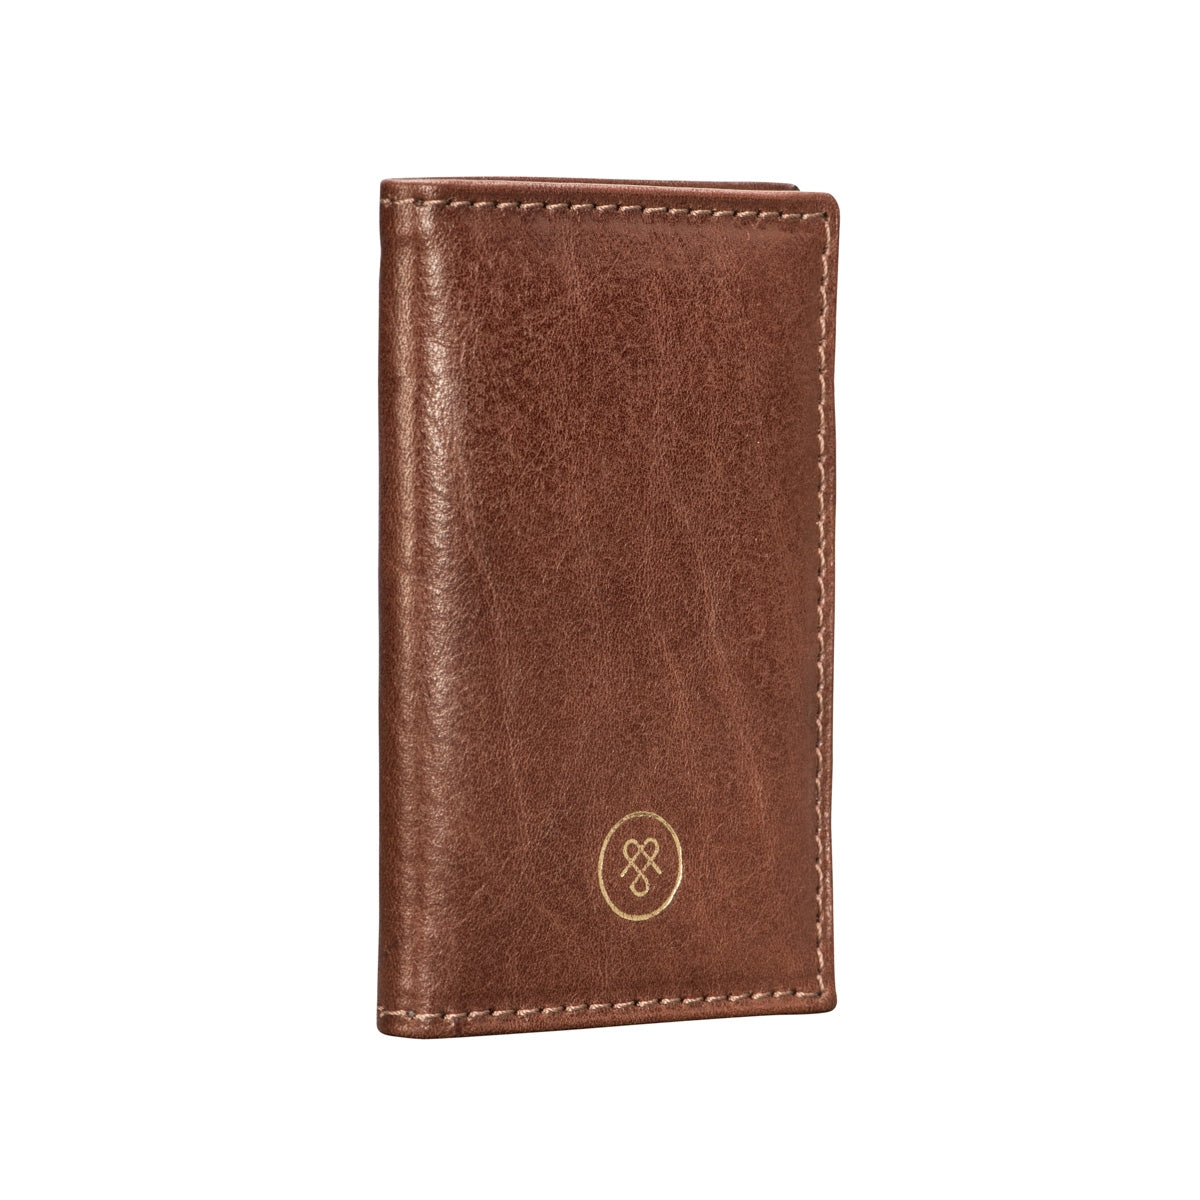 Image 3 of the 'Caldana' Dark Chestnut Mini Pocket Veg-Tanned Leather Address Book